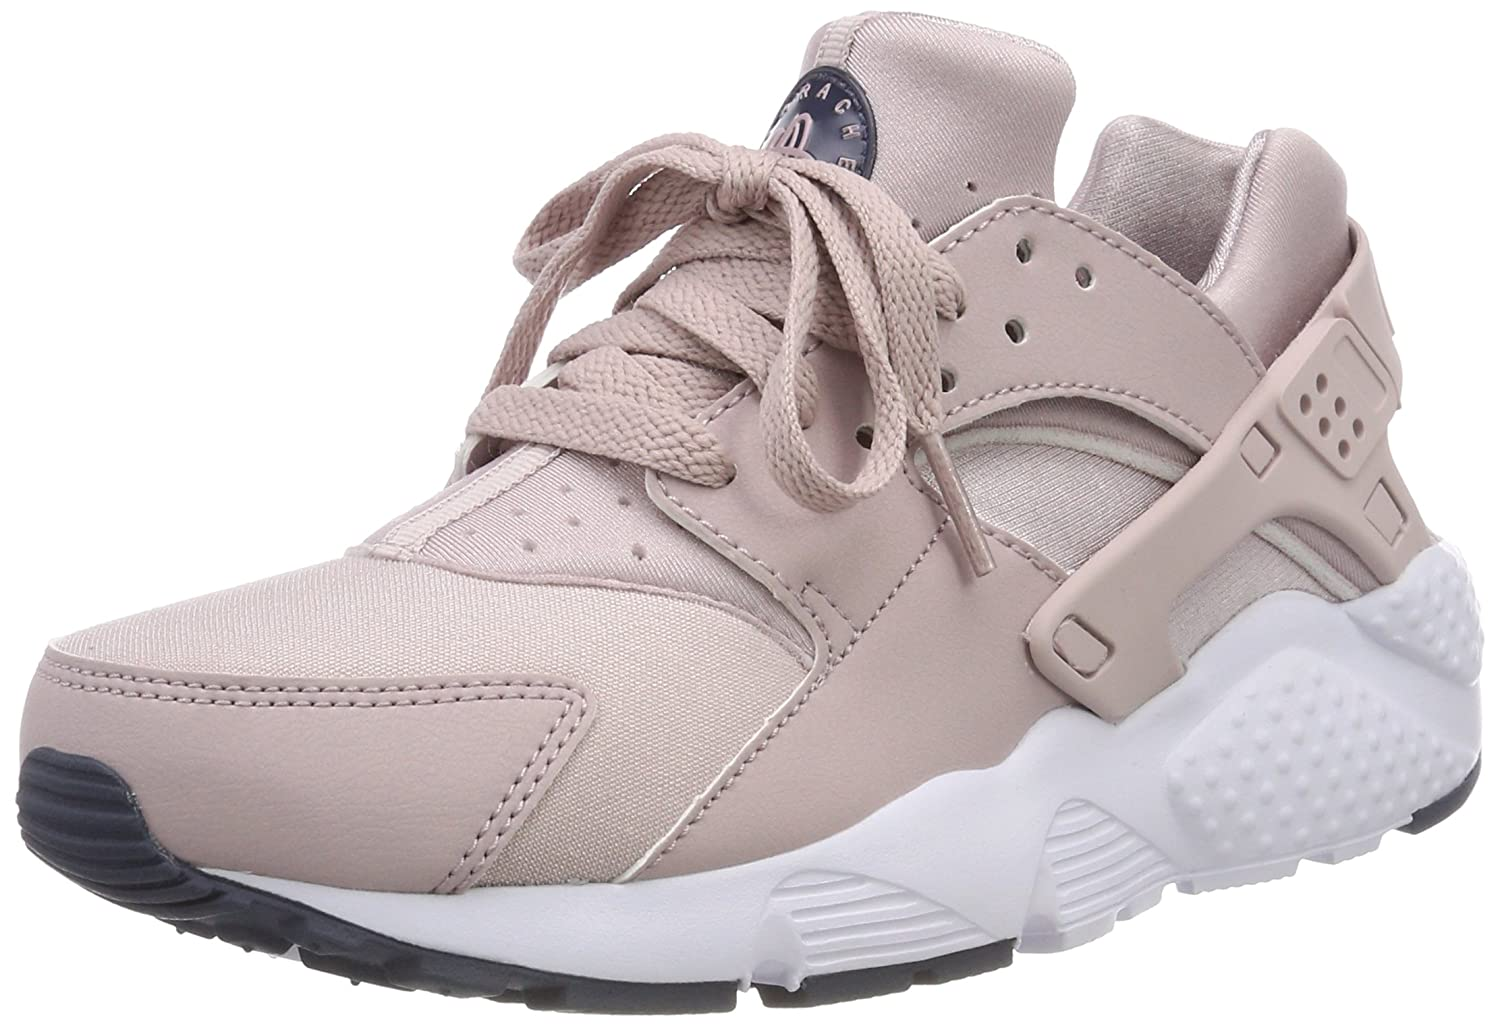 e368f63495 Amazon.com | Nike Huarache Run Big Kids' Shoes Particle Rose 654280-603 (4  M US) | Running